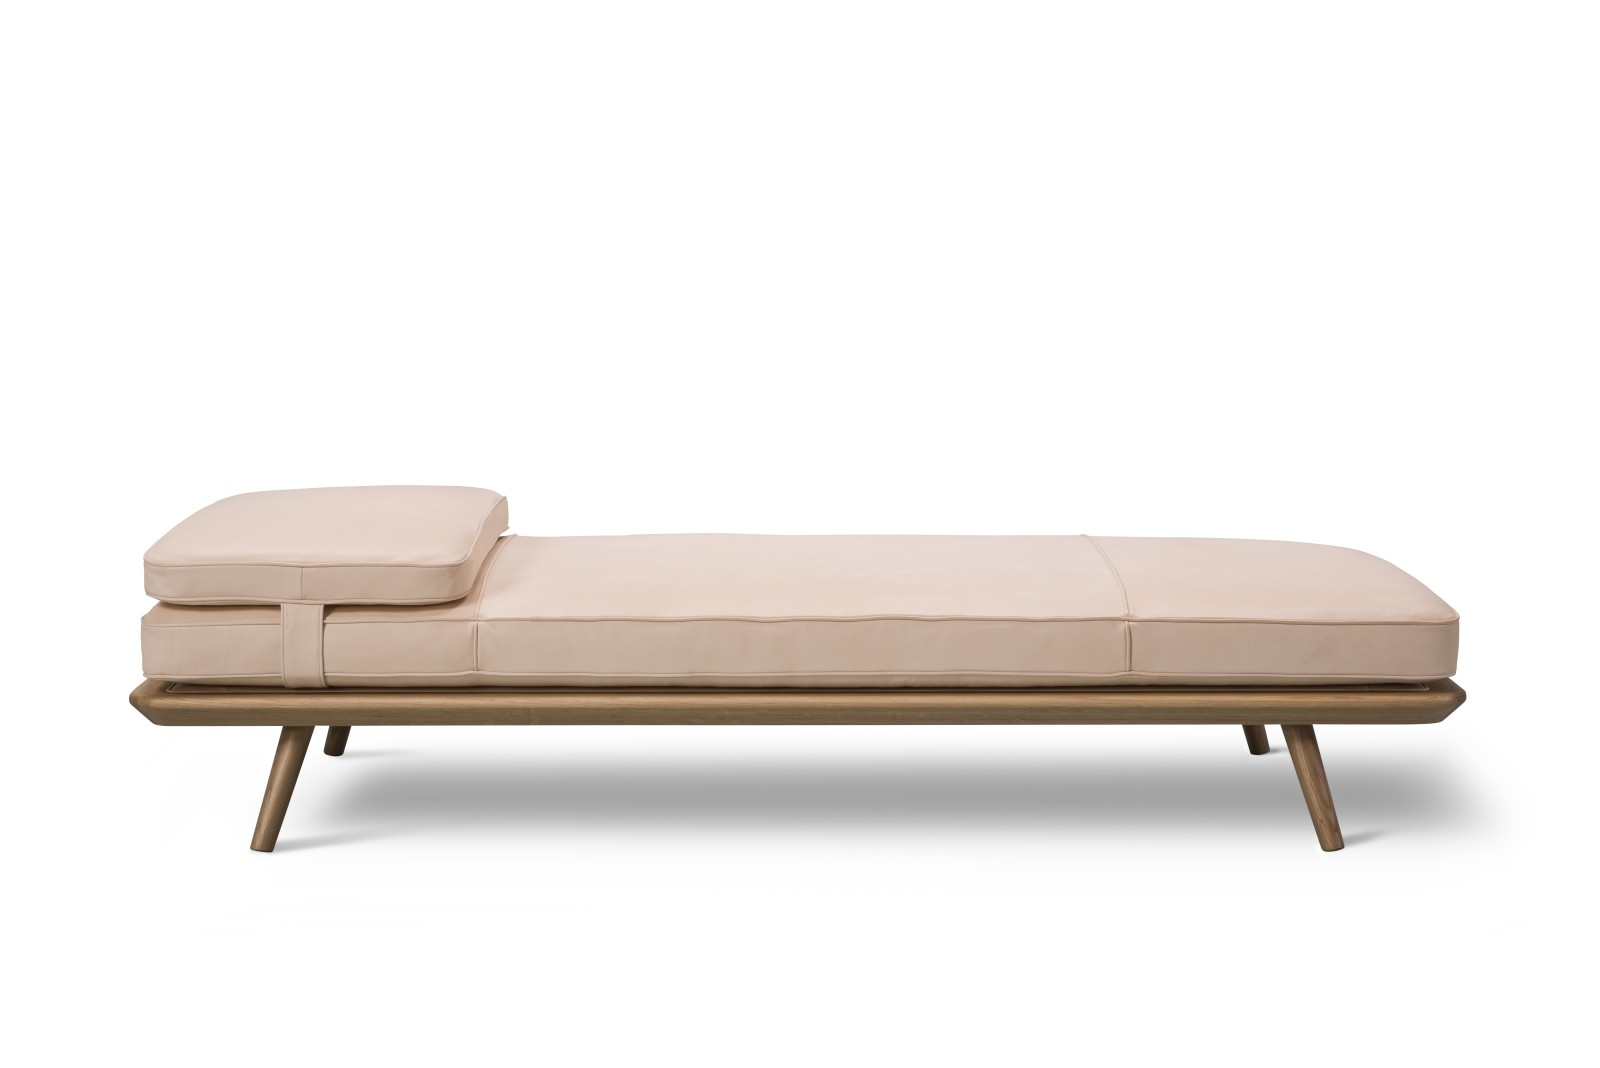 Spine Daybed Oak standard lacquer, With Cushion, Leather 90 Nature